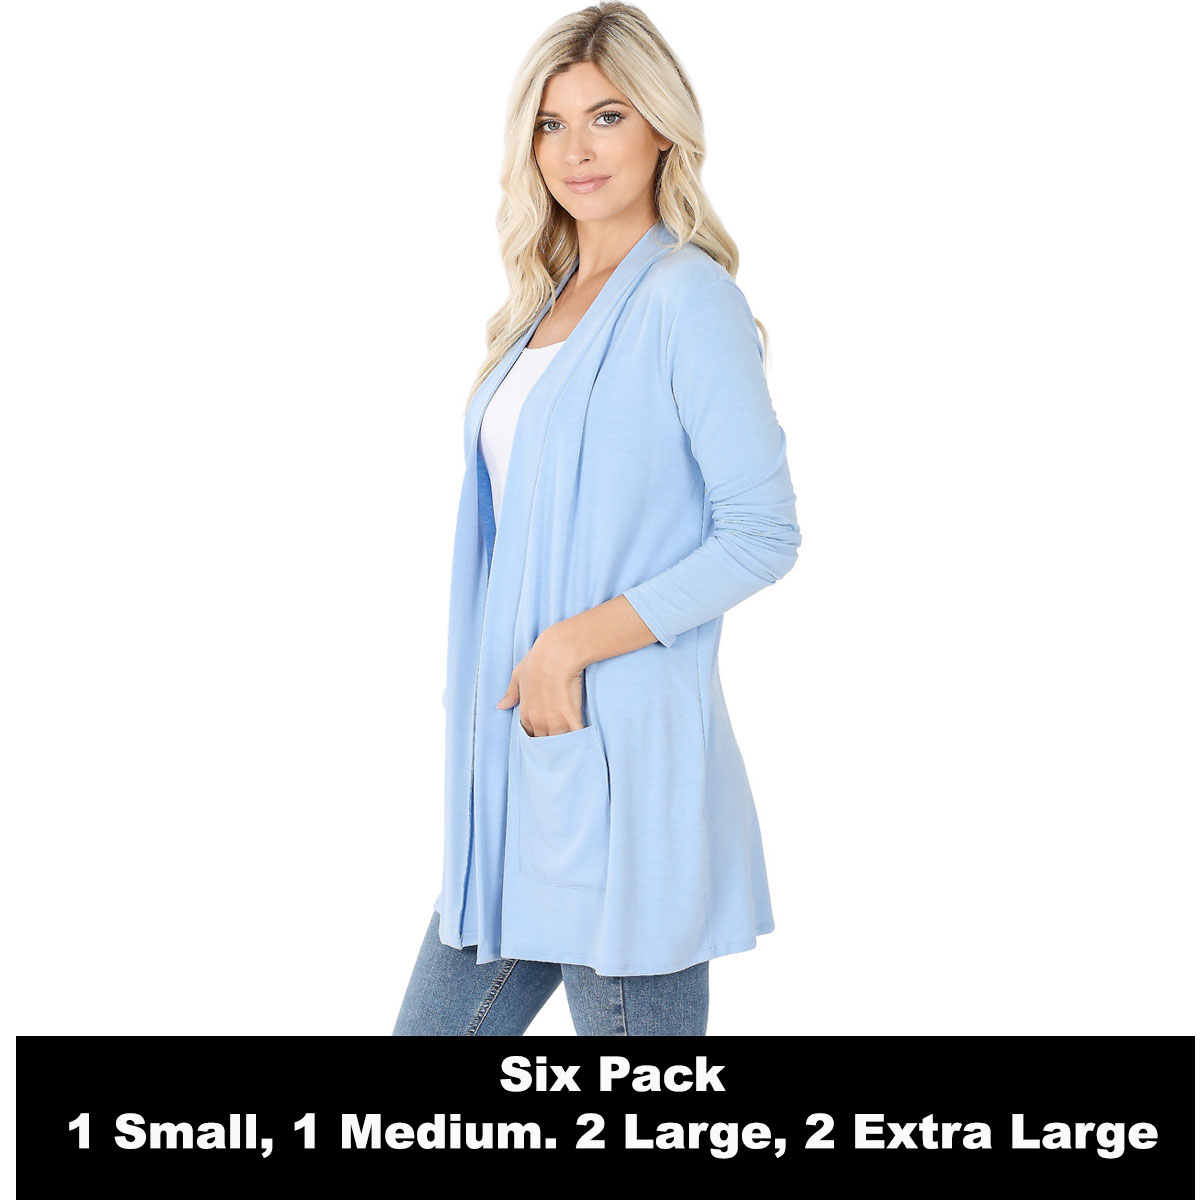 Slouchy Pocket Open Cardigan 1443 -  SPRING BLUE SIX PACK Slouchy Pocket Open Cardigan 1443 (1S/1M/2L/2XL)